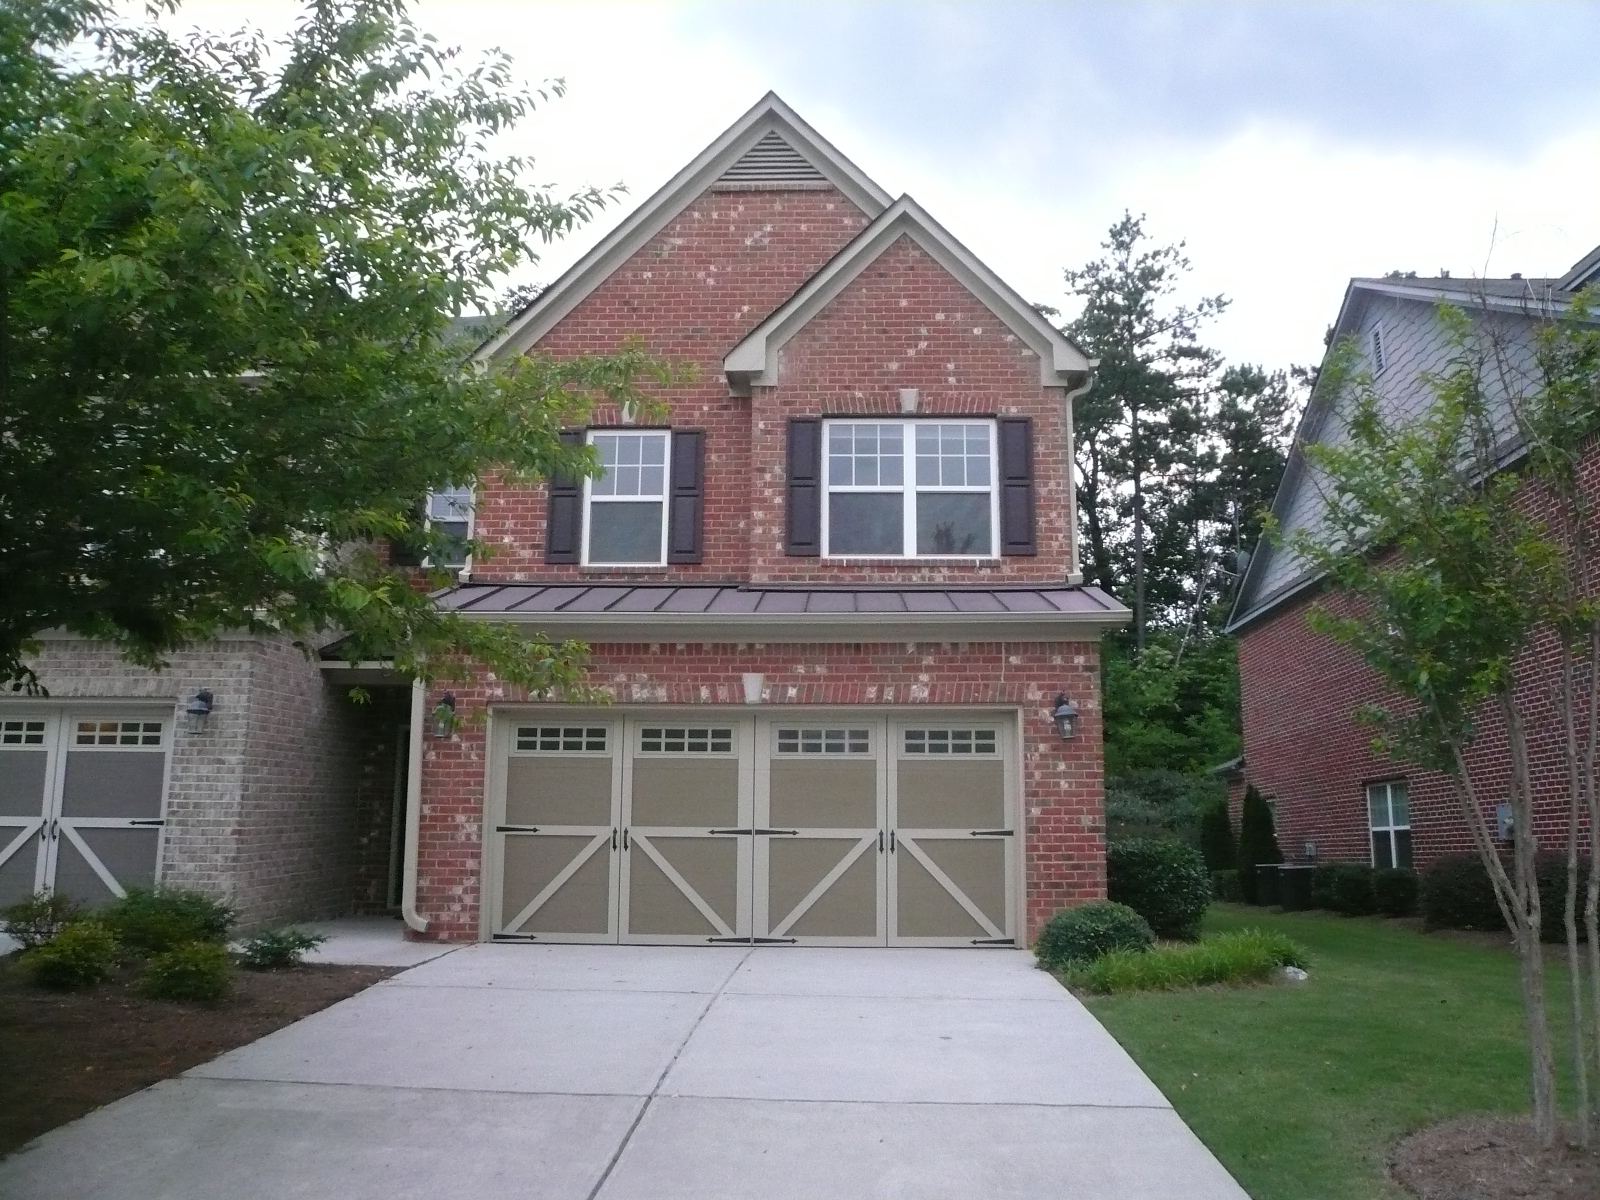 3BR/2.5BA End Unit Townhouse in Alpharetta 30005